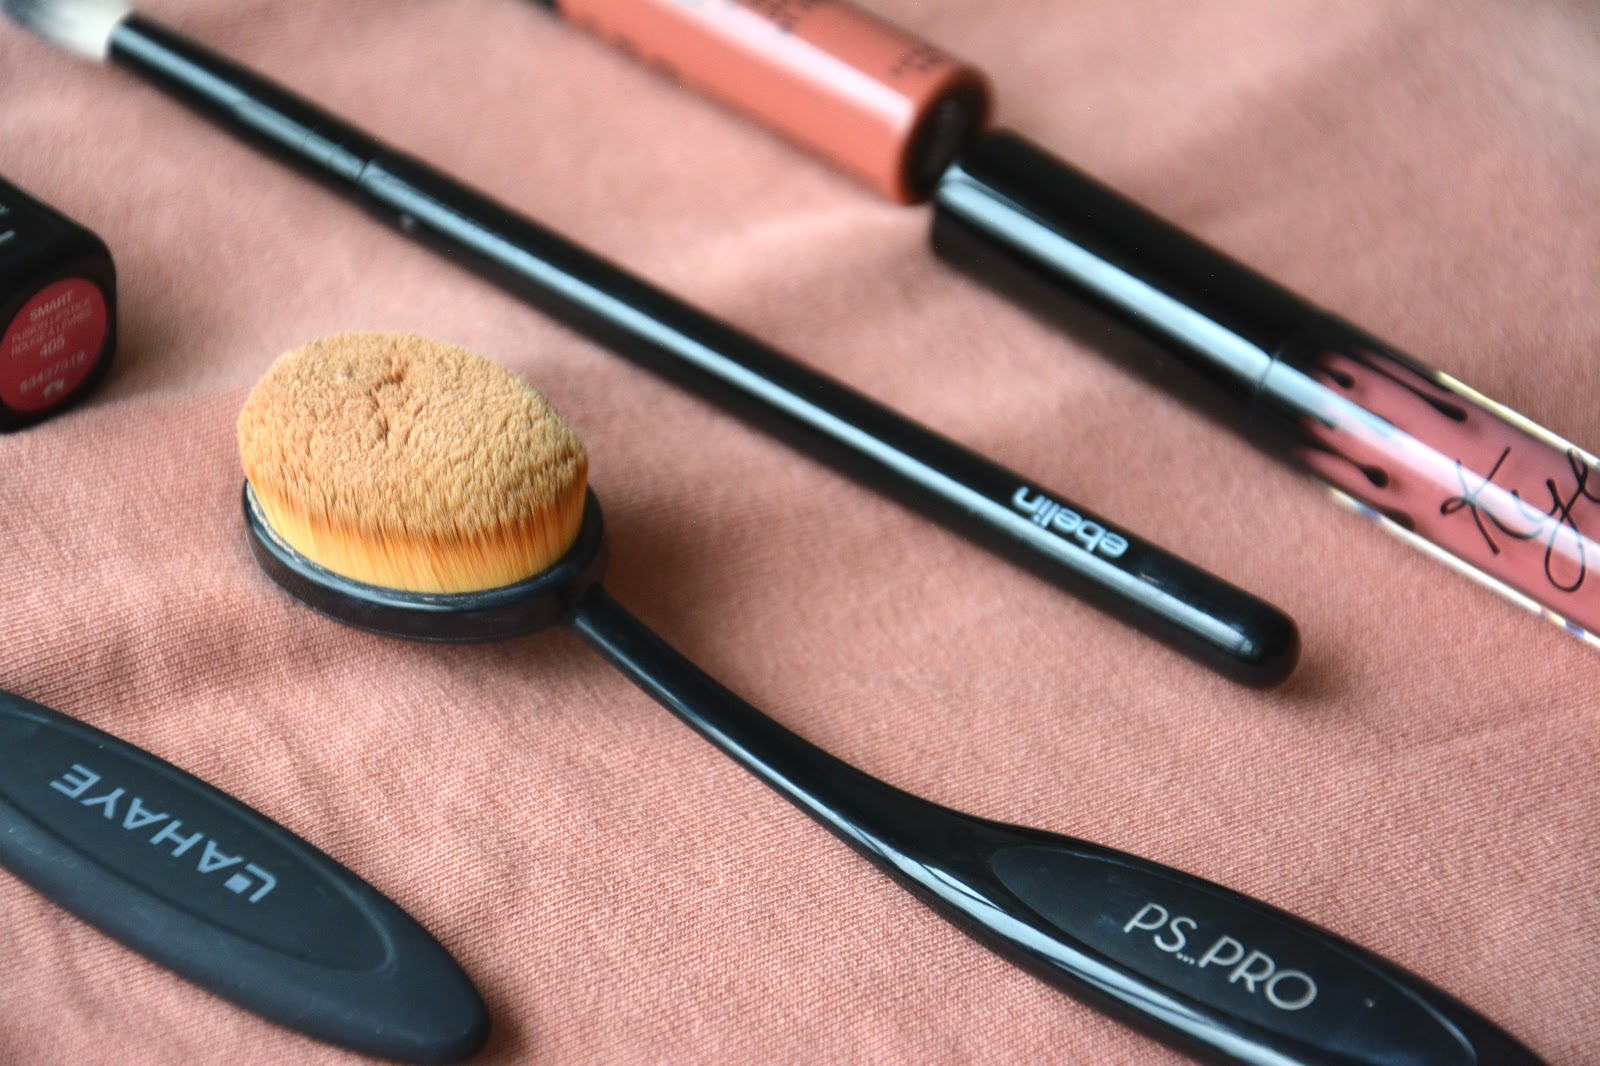 Lahaye Oval Brushes, PS Pro Oval Brush, Kiko Lipstick, Ebelin Blending Brush